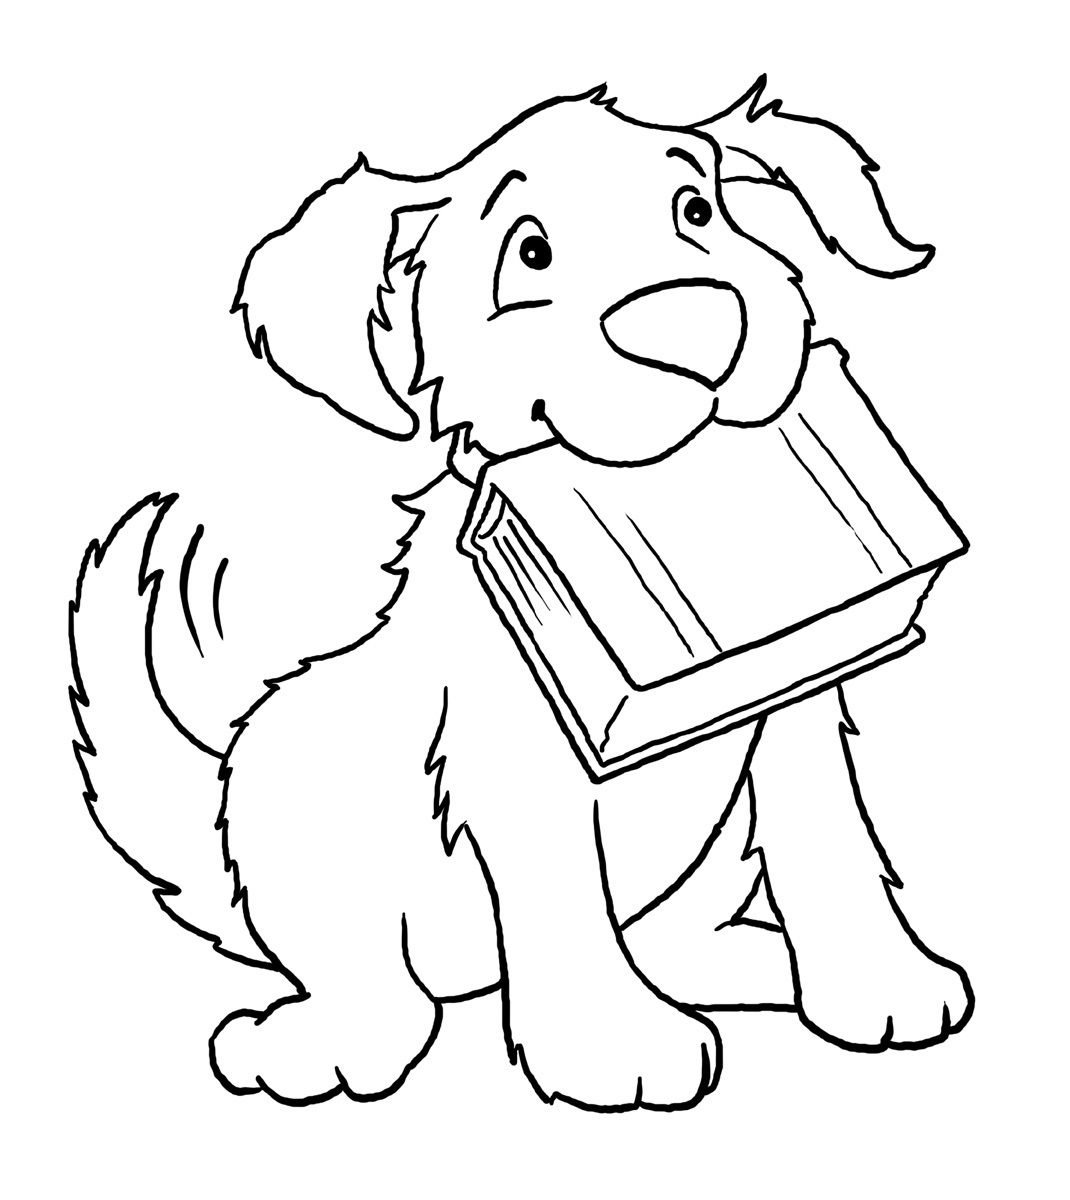 childrens coloring pages with puppies - photo#13